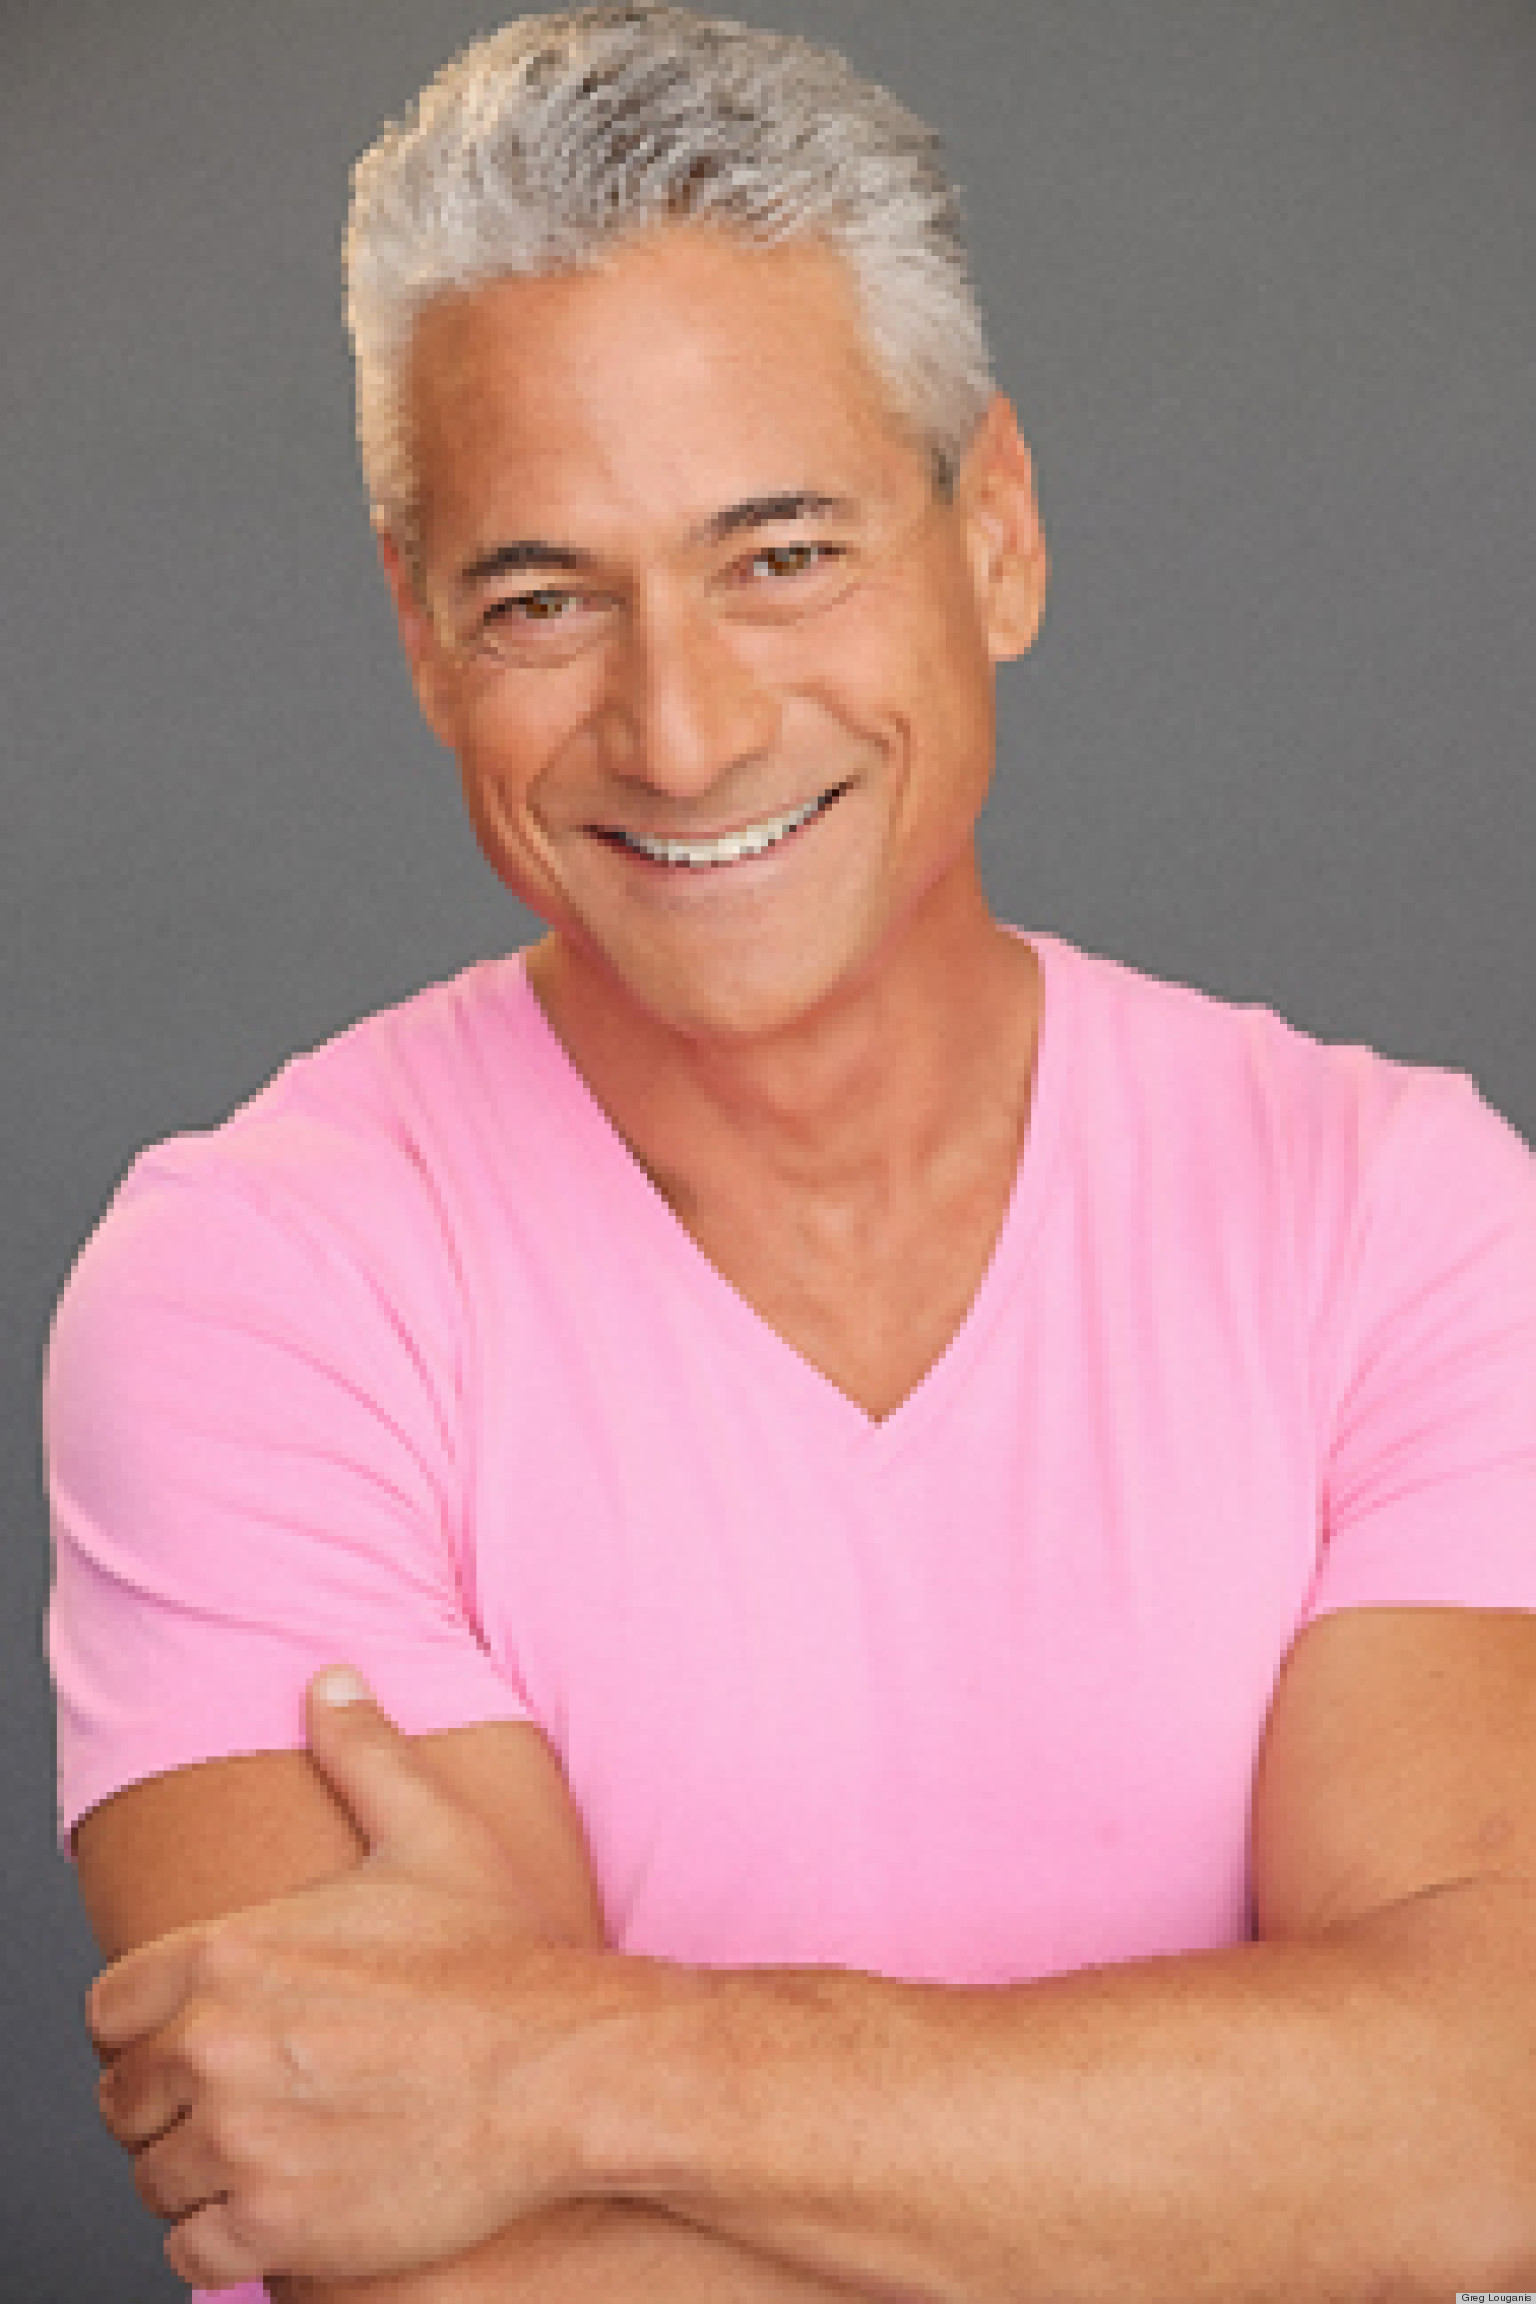 modern mobile homes with Greg Louganis Back On Board B 3086380 on Nist Iot Standards also Stock Photo Zimbabwe Traditional House 25068656 in addition Over Loved Modern Conserving Rose Seidler House further bayareahome additionally Greg Louganis Back On Board b 3086380.